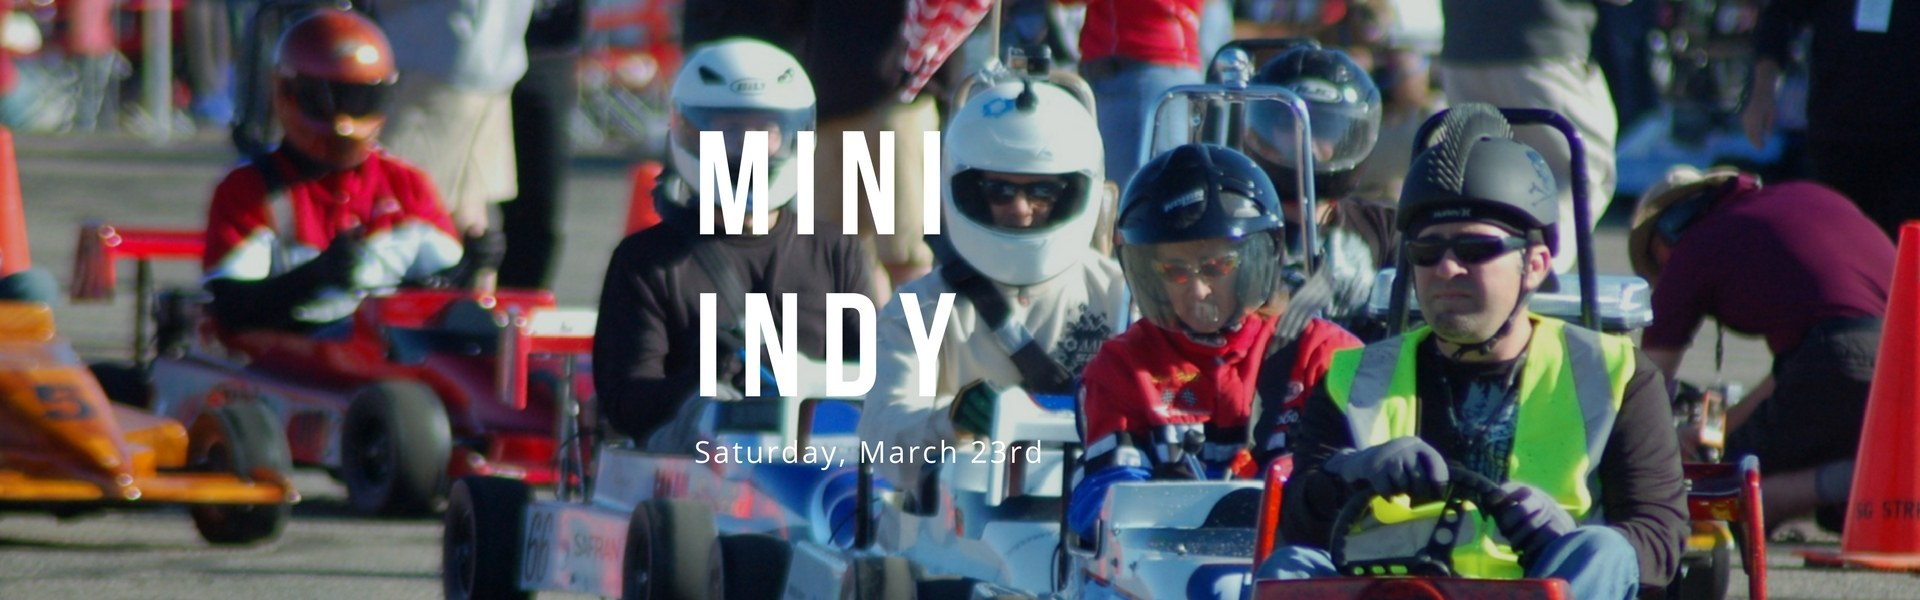 Ready, Set, Go ... to the Mini-Indy